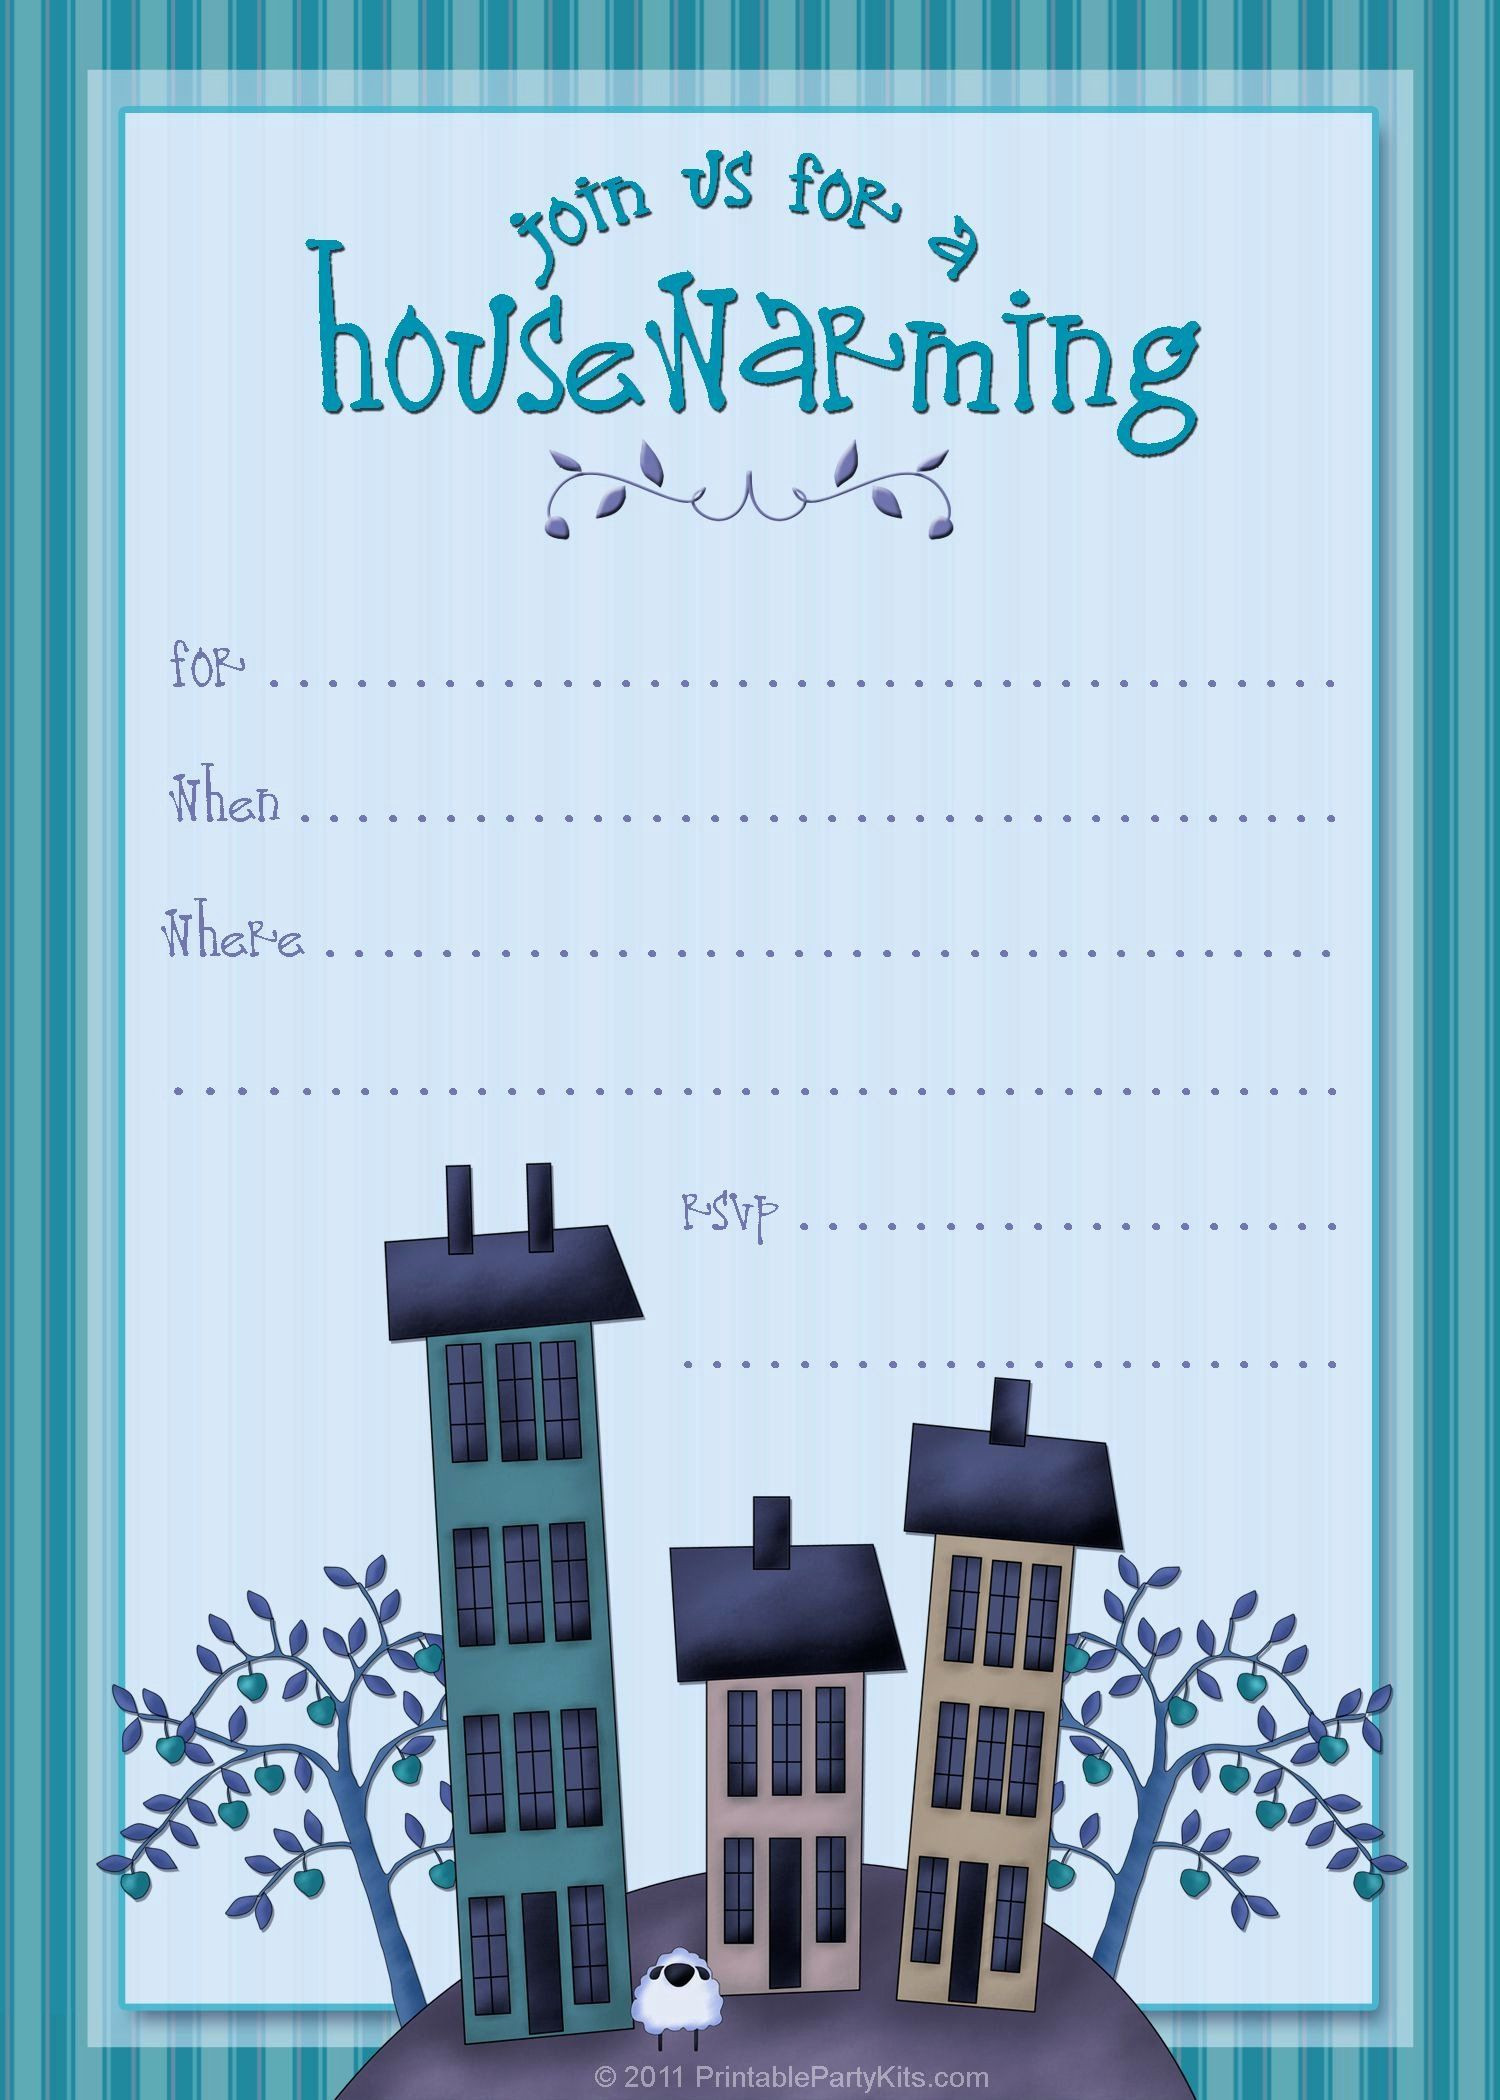 House Warming Party Invitation Template New Housewarming